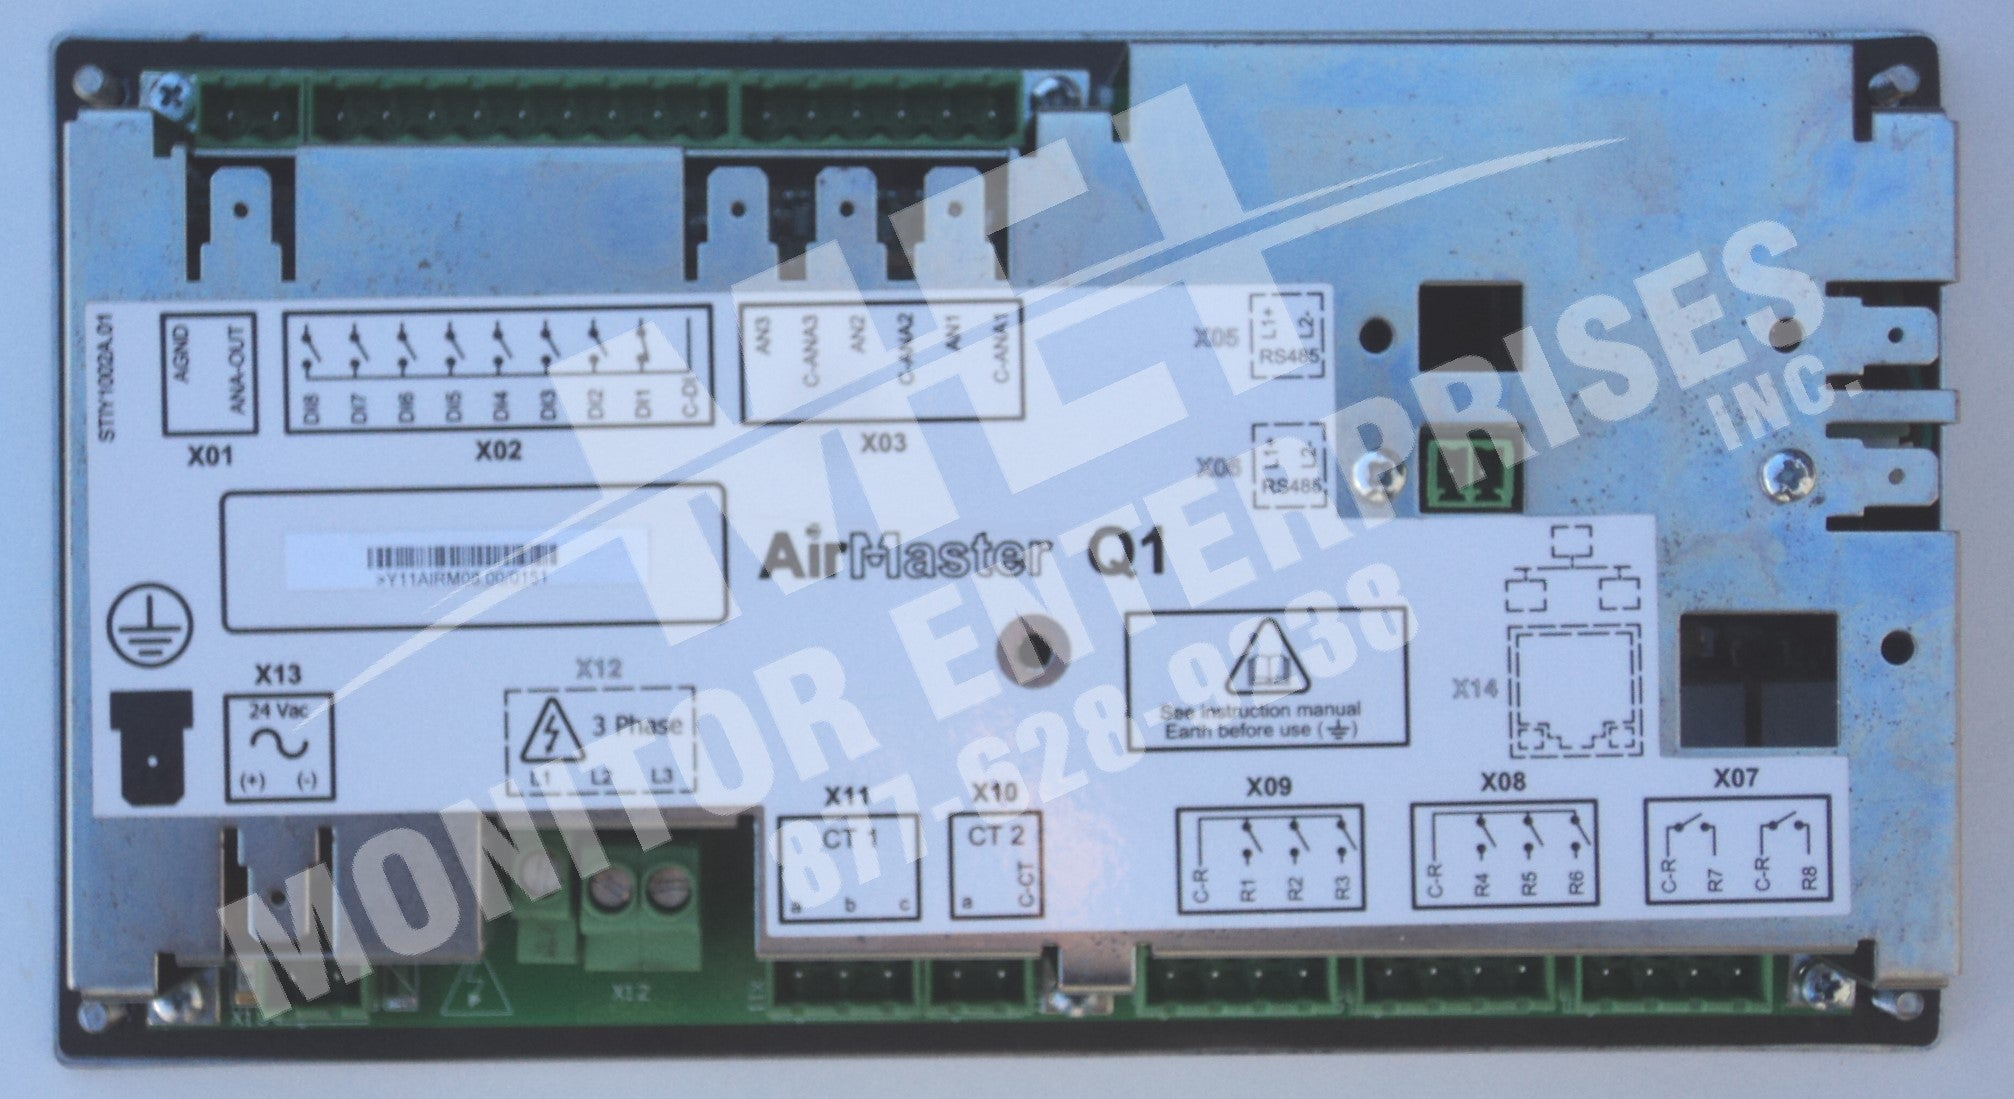 Y11AIRM08 00 CMC Modeltype: AirMaster Q1 Y11AIRM08 00 bus